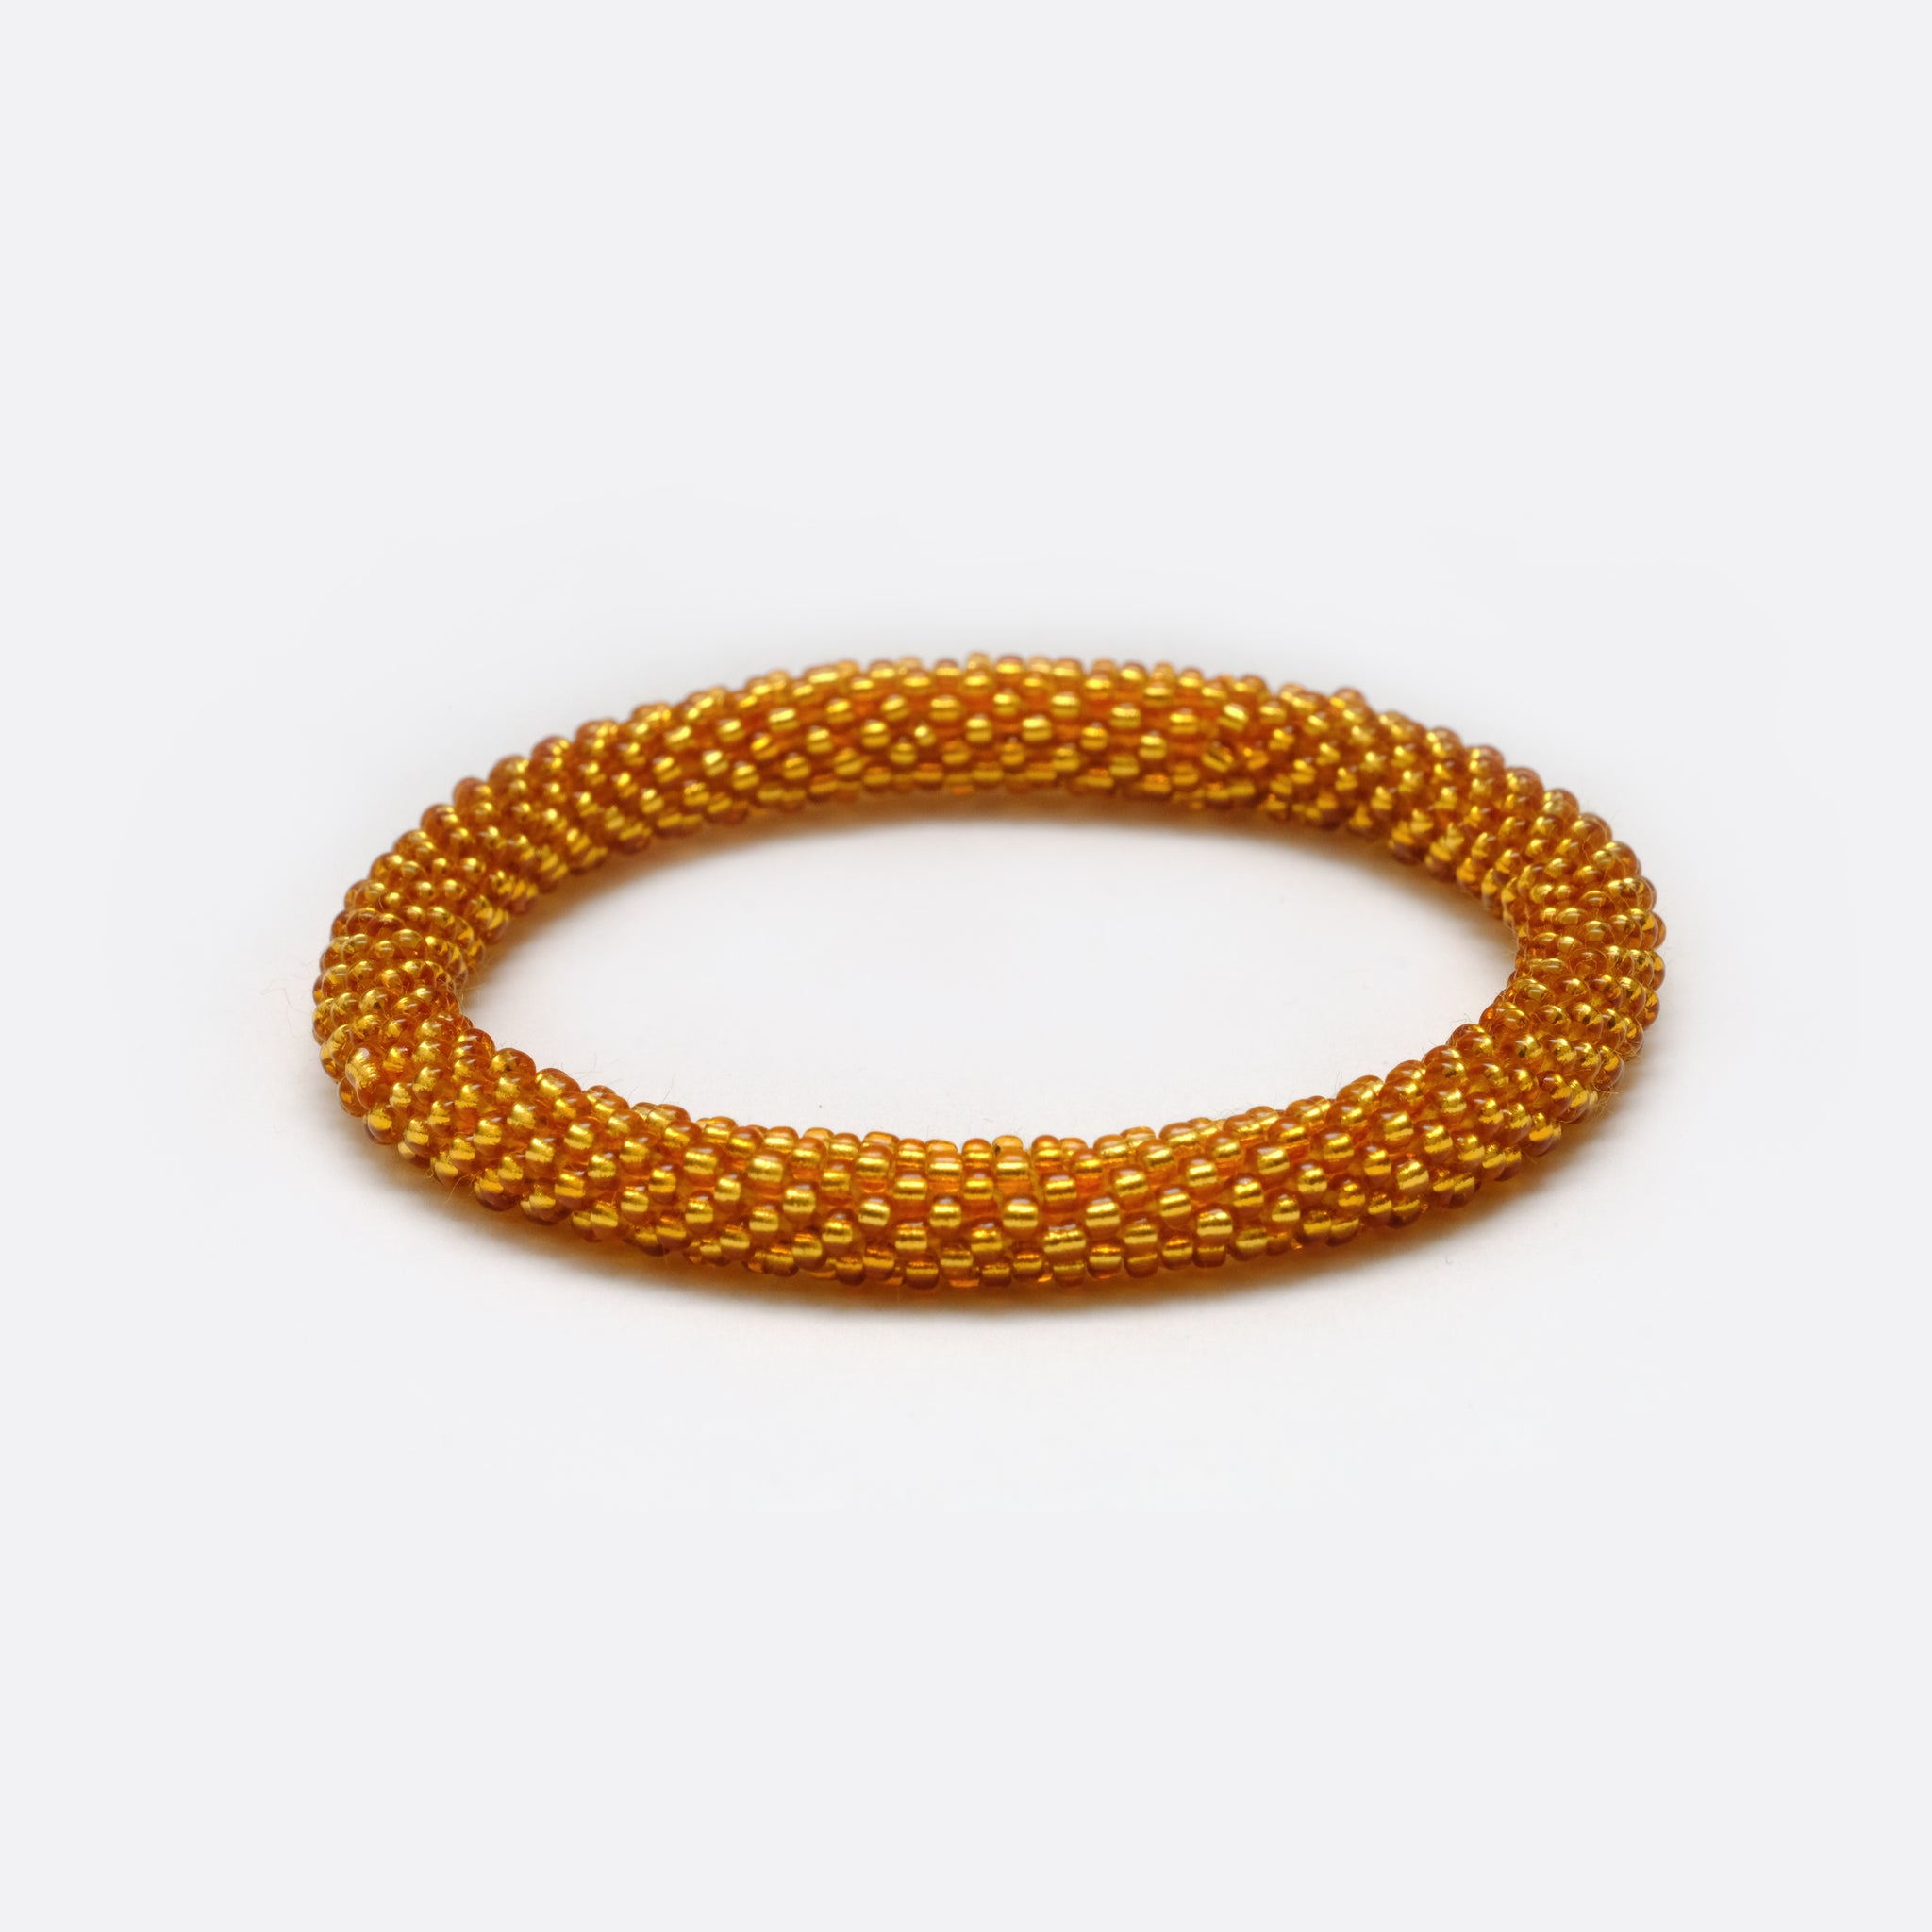 Beaded Bracelet - Shiny Gold